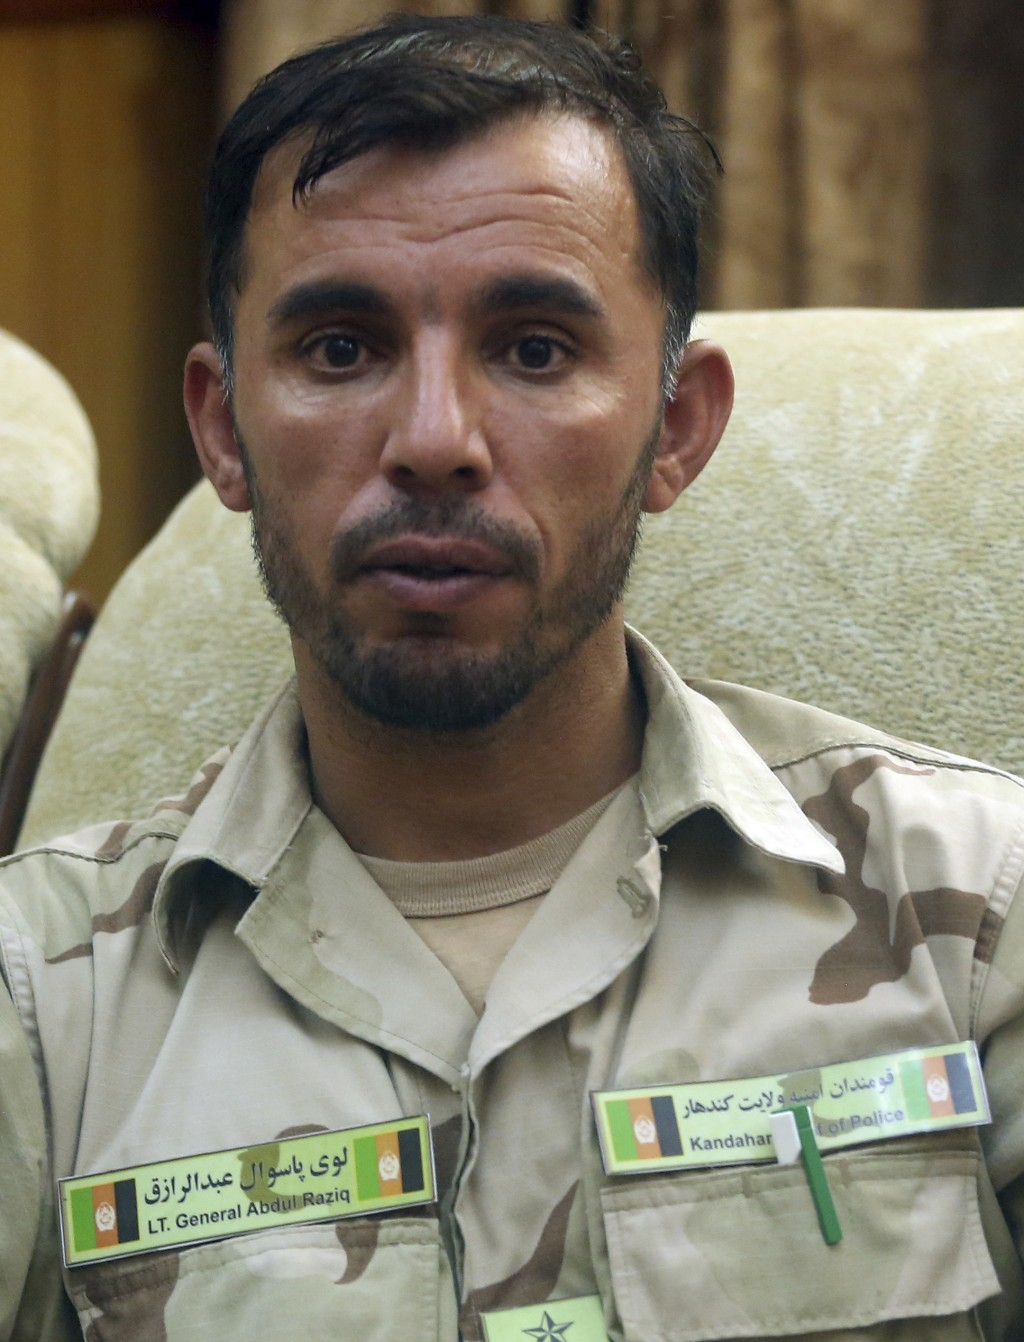 In this Aug. 4, 2016 photo, Gen. Abdul Raziq, Kandahar police chief, speaks during an interview with The Associated Press in Kandahar, Afghanistan. Th...